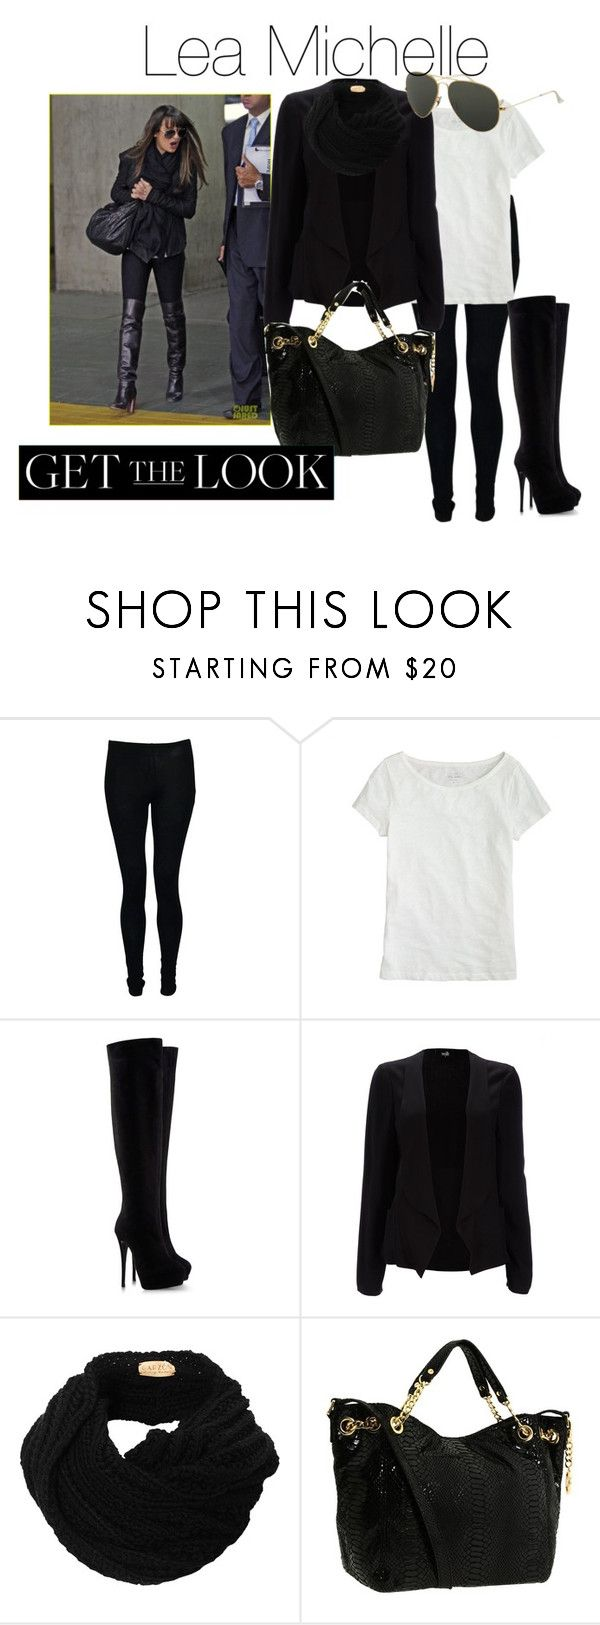 """""""Lea Michelle"""" by gloriallauca ❤ liked on Polyvore featuring J.Crew, Giuseppe Zanotti, Wallis, MICHAEL Michael Kors, Ray-Ban, glee and leamichelle"""